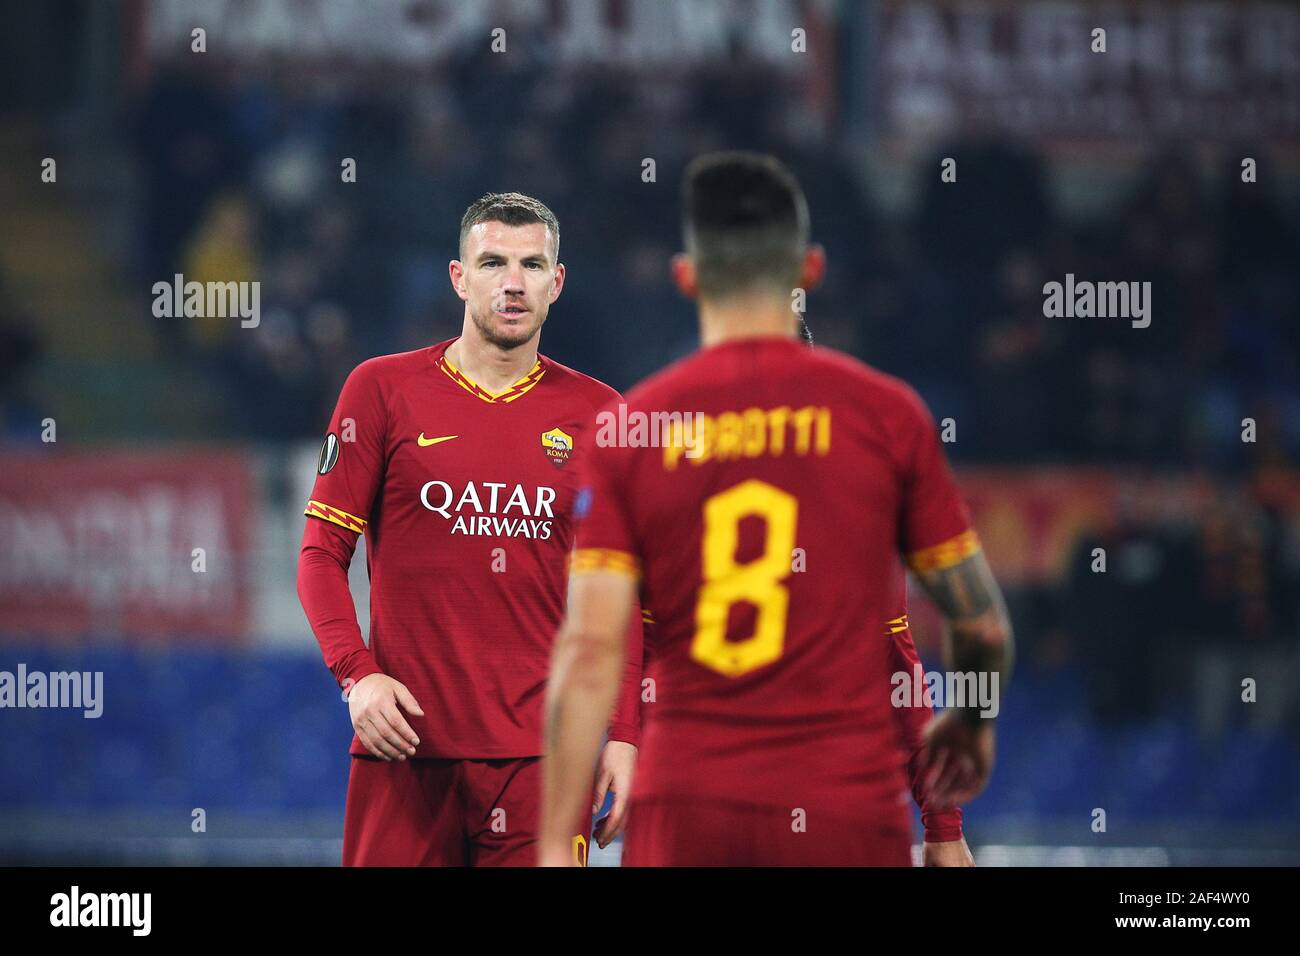 Edin Dzeko of Roma celebrates with Diego Perotti after scoring 2-1 goal during the UEFA Europa League, Group J football match between AS Roma and Wolfsberg AC on December 12, 2019 at Stadio Olimpico in Rome, Italy - Photo Federico Proietti/ESPA-Imaes Stock Photo